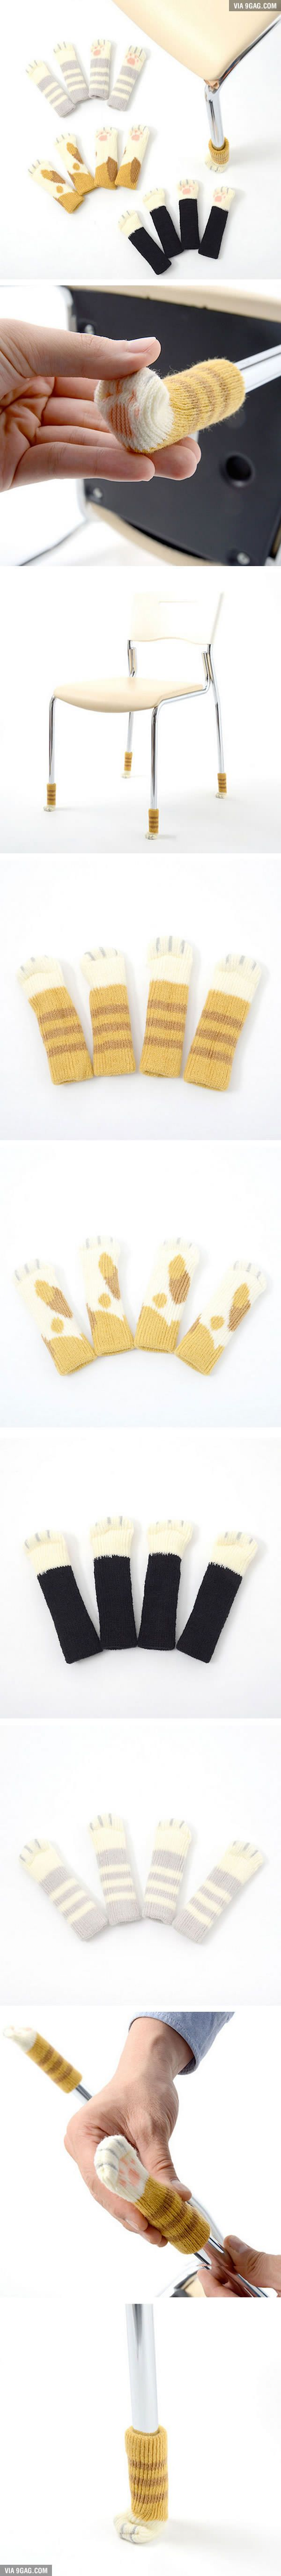 Cat Socks For Tables And Chairs That Protect Your Floor, no pattern but cute idea for knit leg covers.